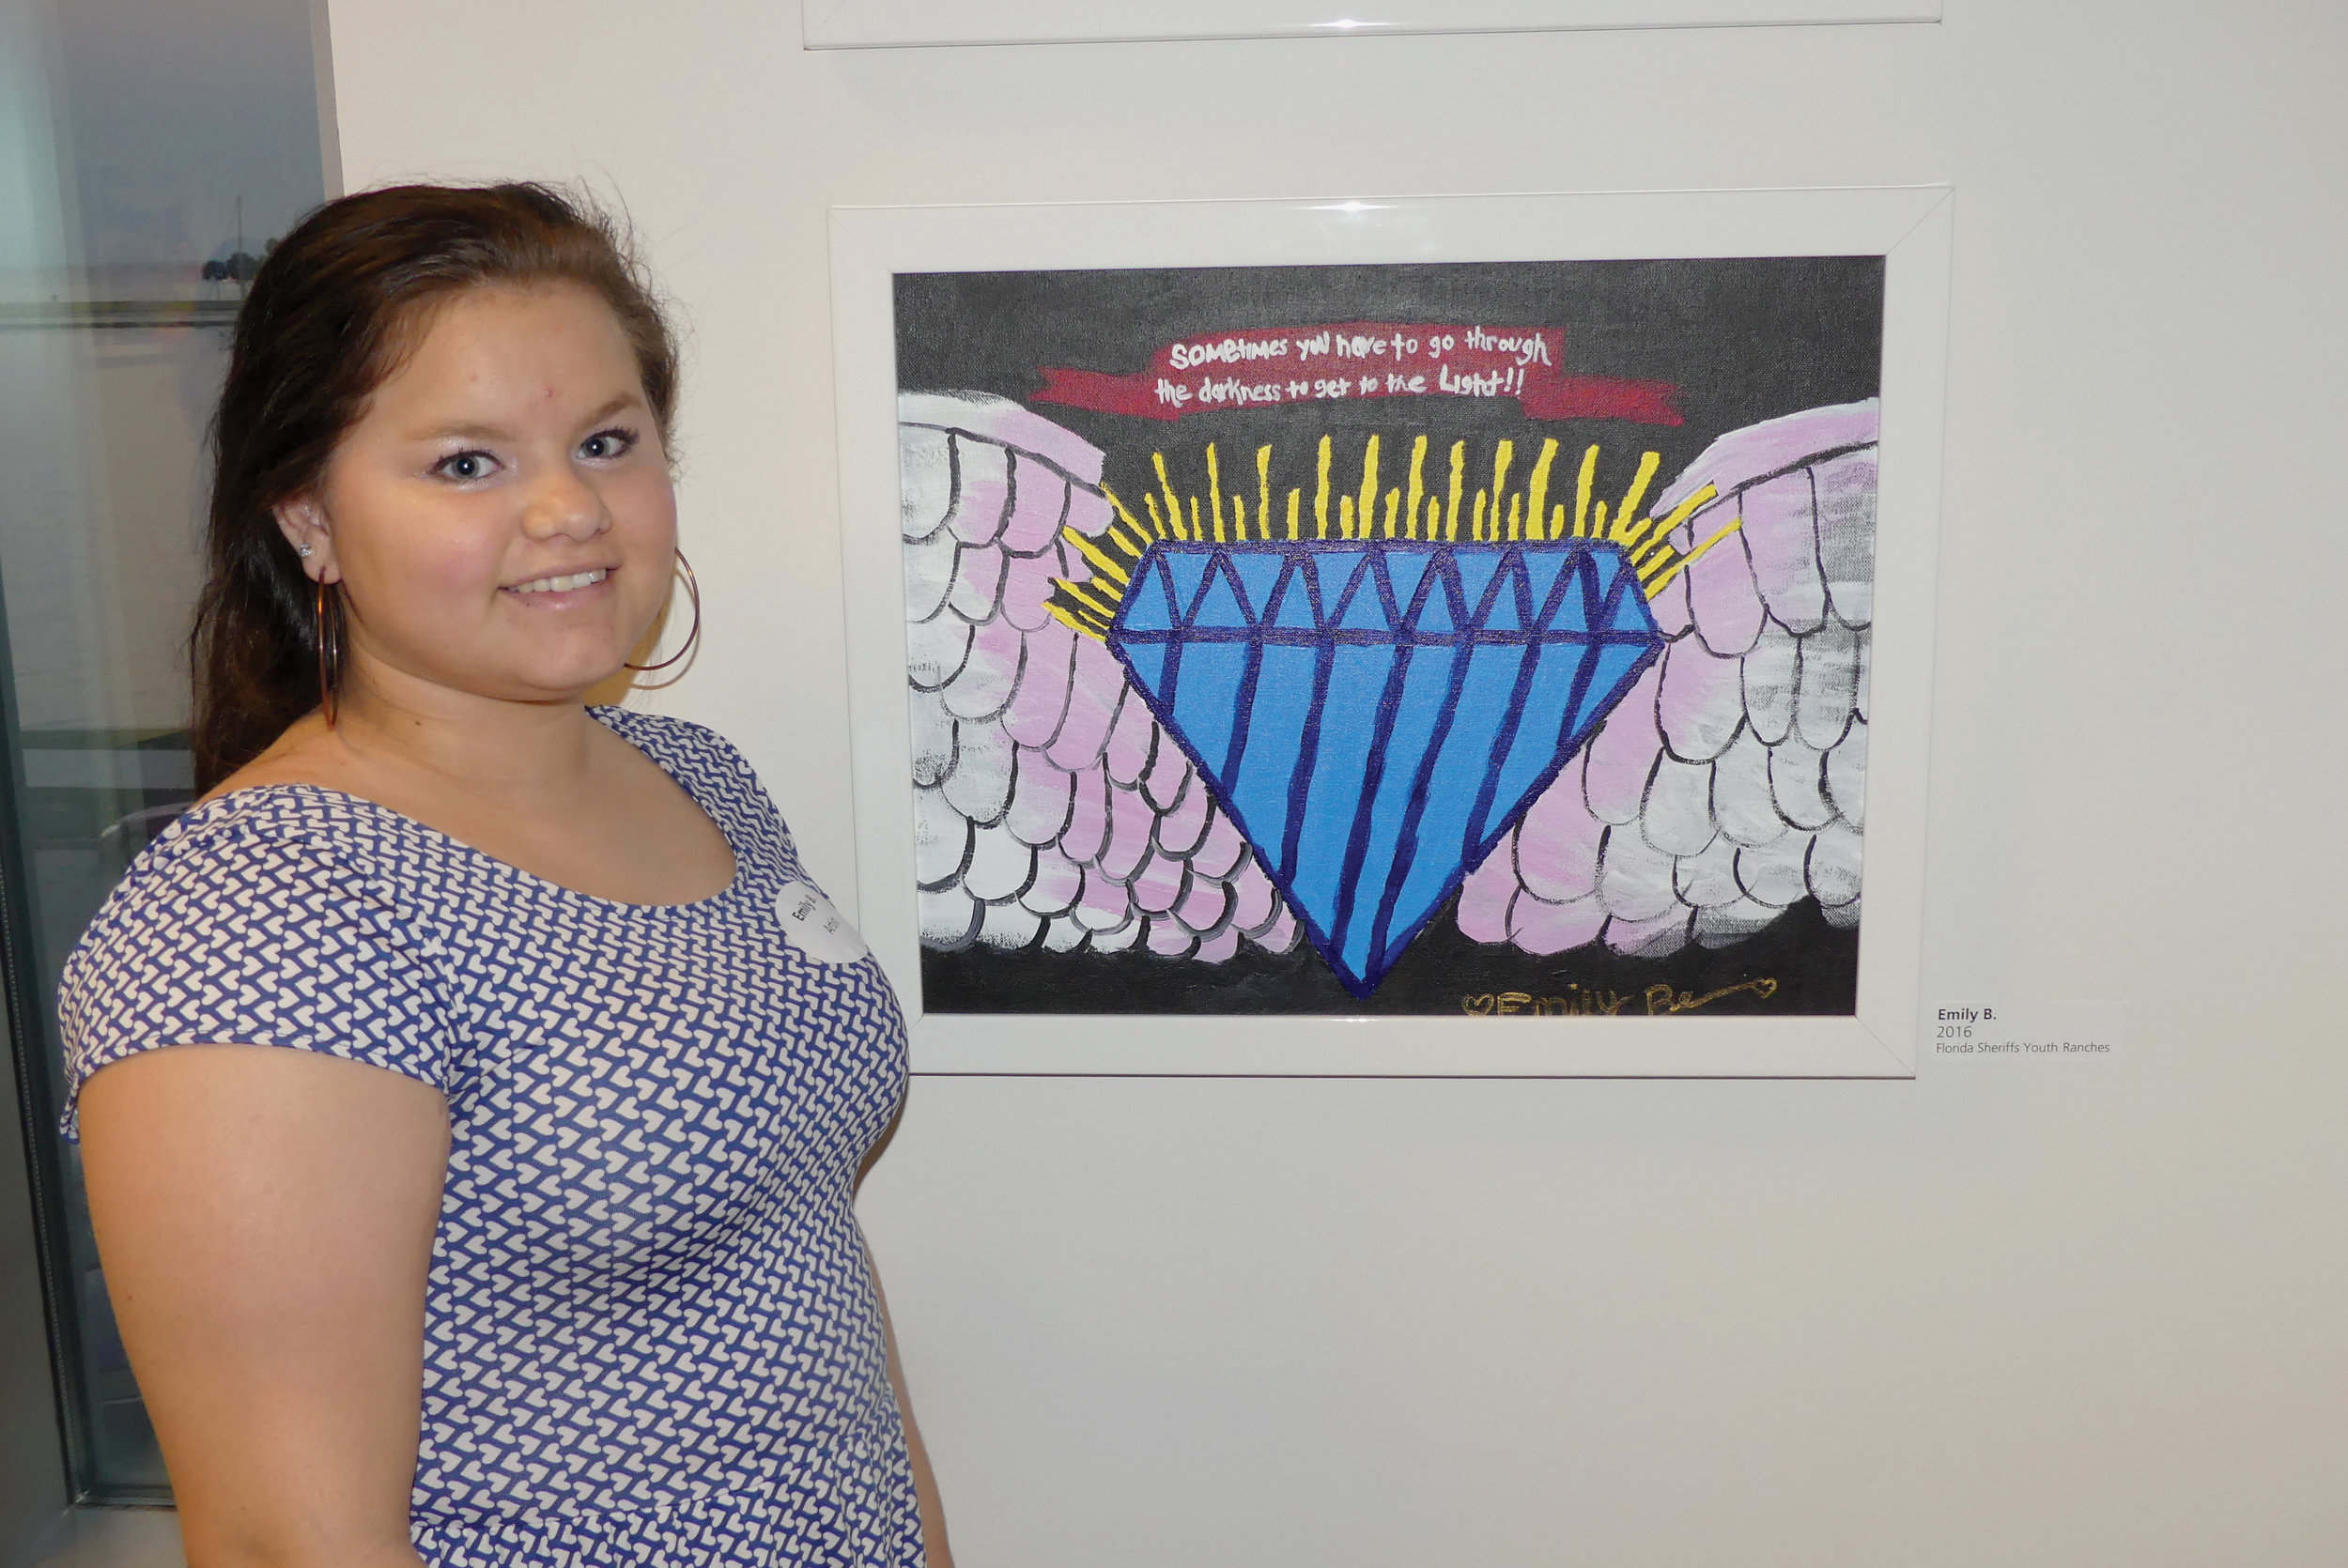 This is Emily with her work of art for the 2016 Young Artists of Florida Exhibition at the Museum of Fine Arts, St. Petersburg.